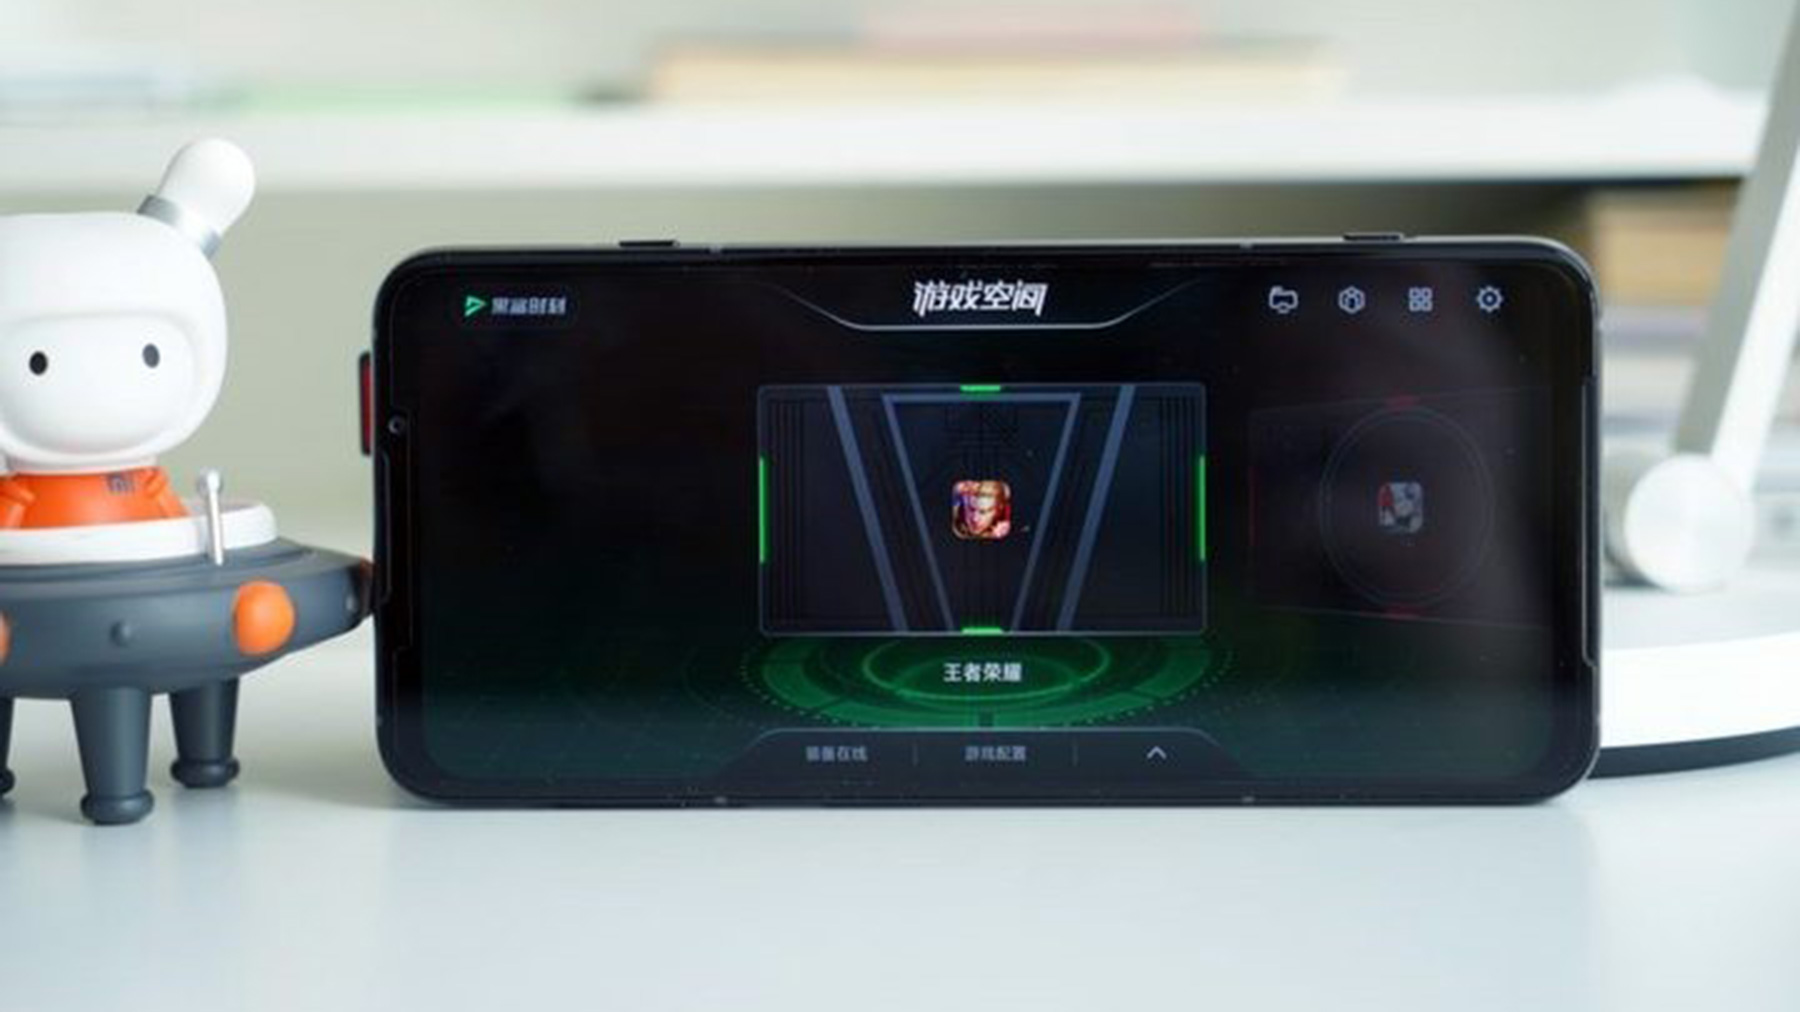 High refresh rate screen popular, game mobile phone concept is still established 2